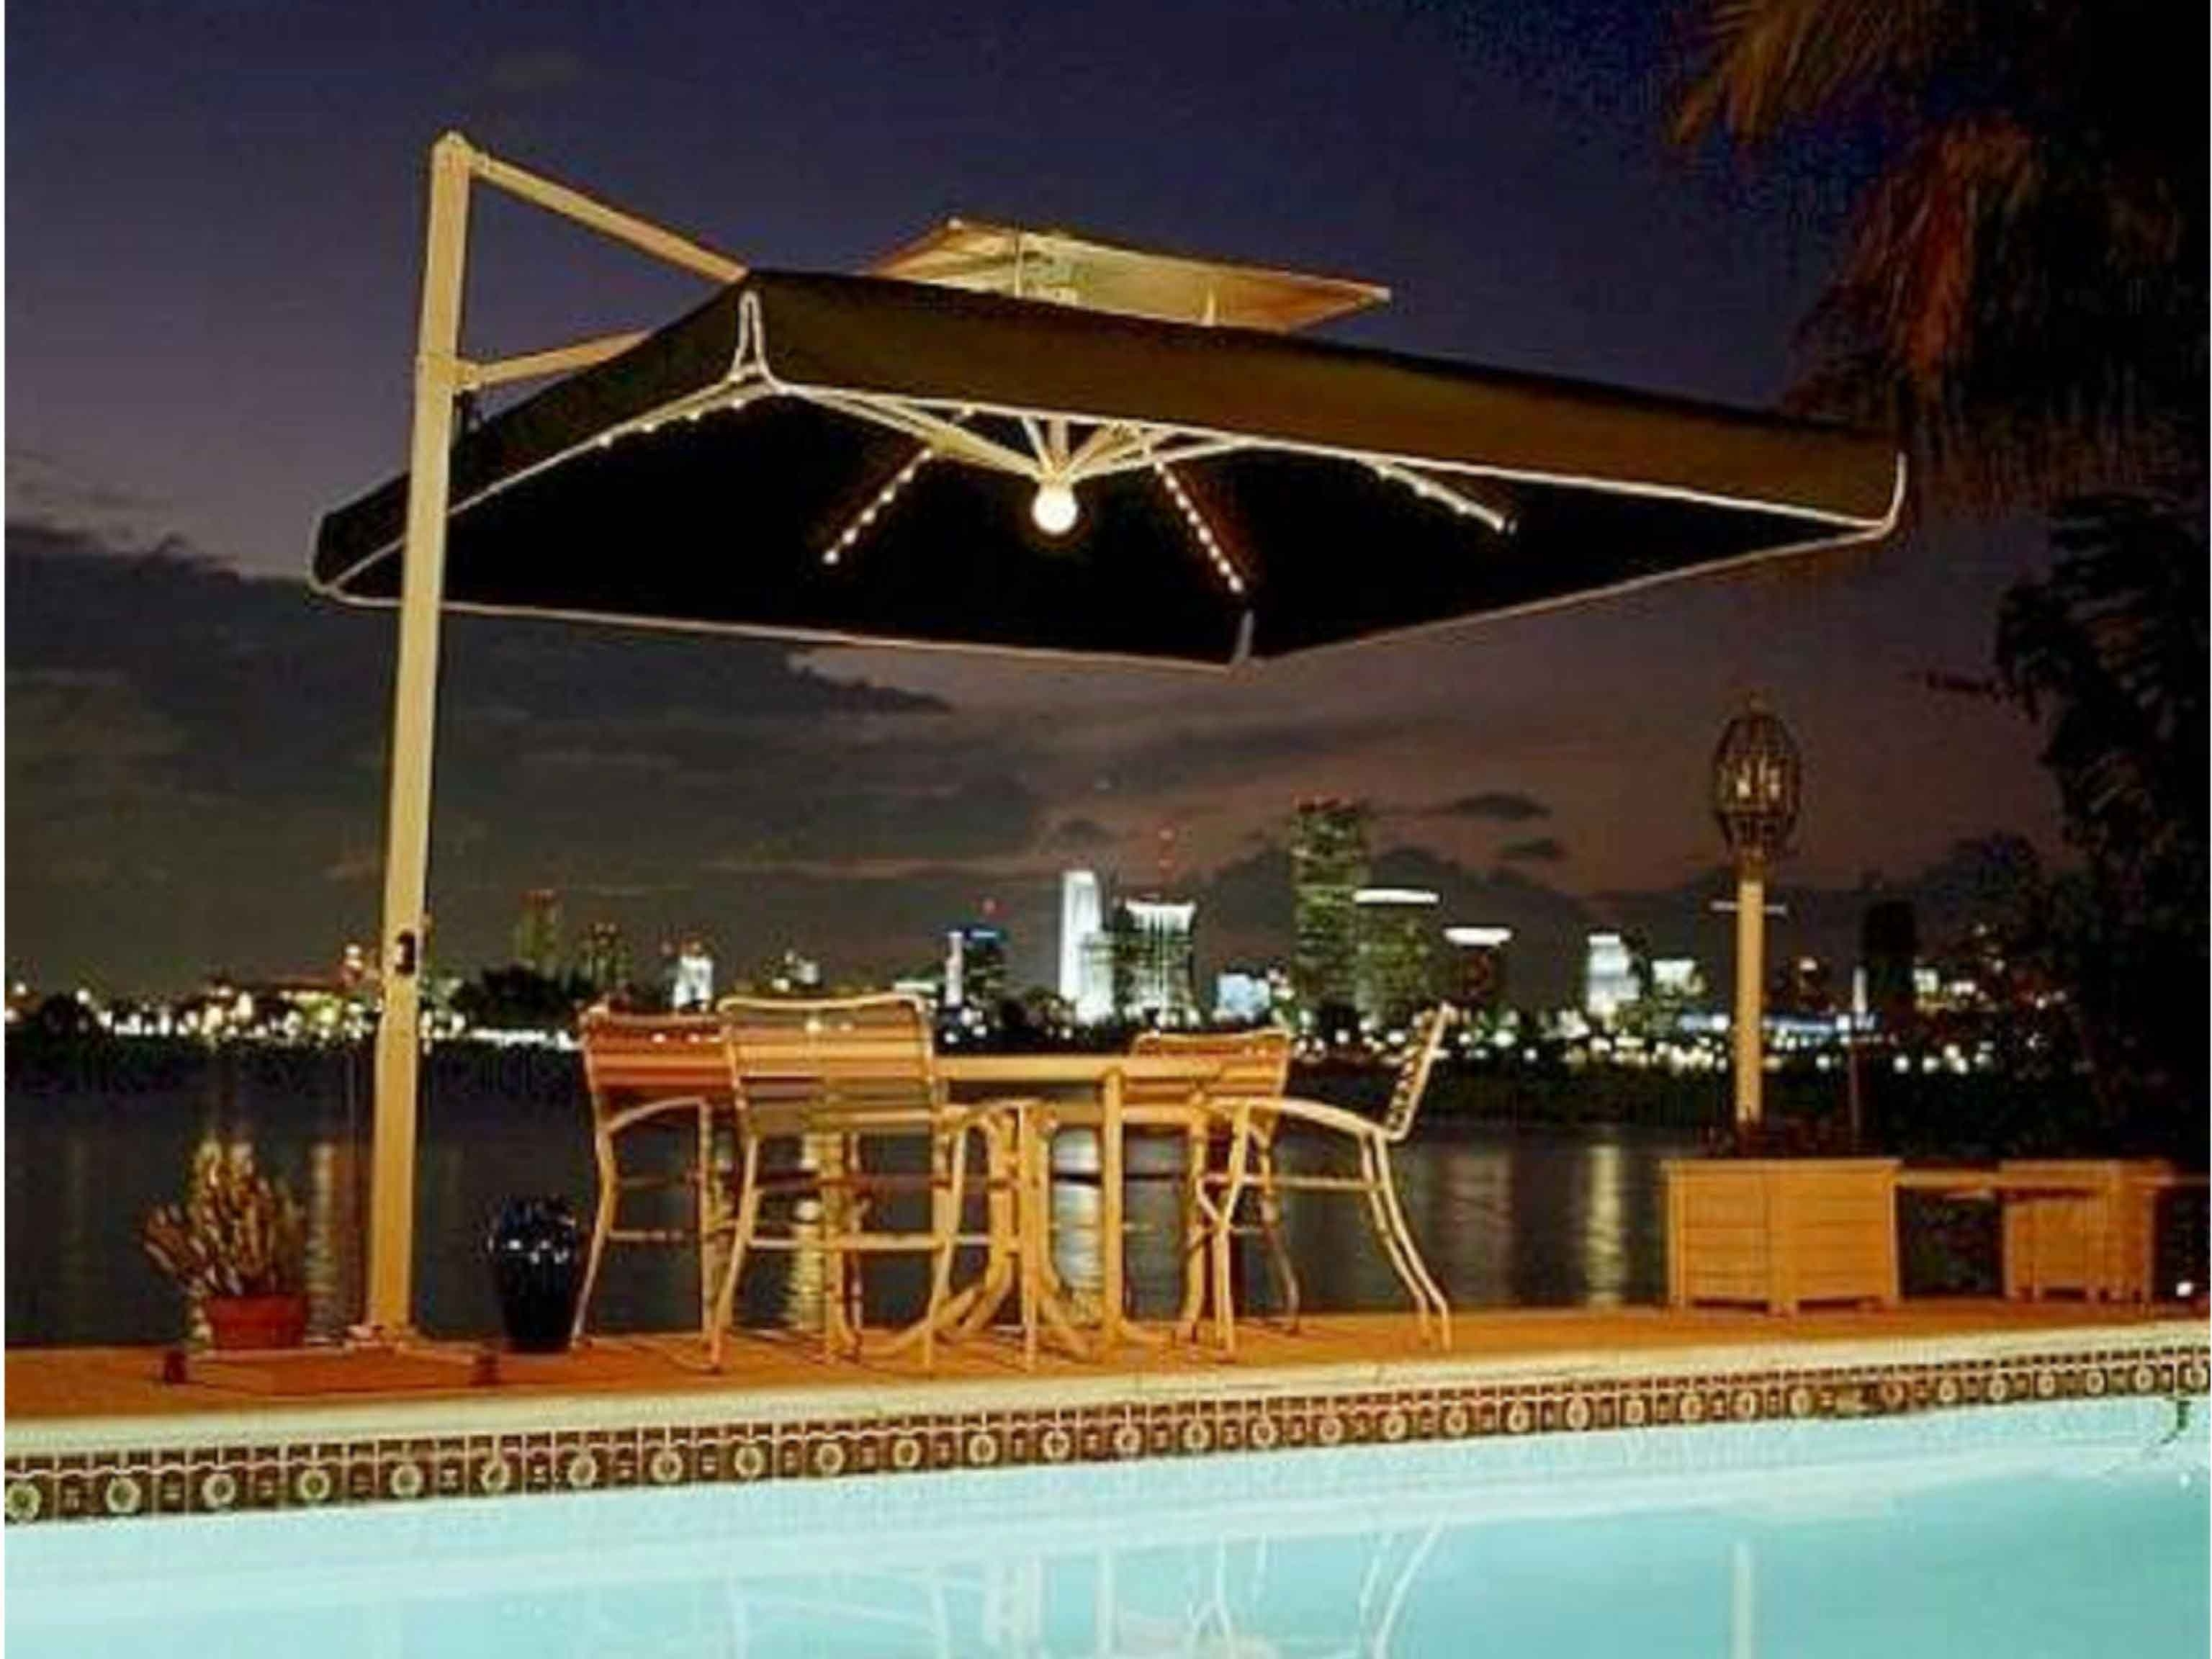 Well Known Patio Umbrellas With Solar Lights With Regard To Furniture: Patio Umbrellas Home Depot Bedroom Light Bathroom Light (View 16 of 20)